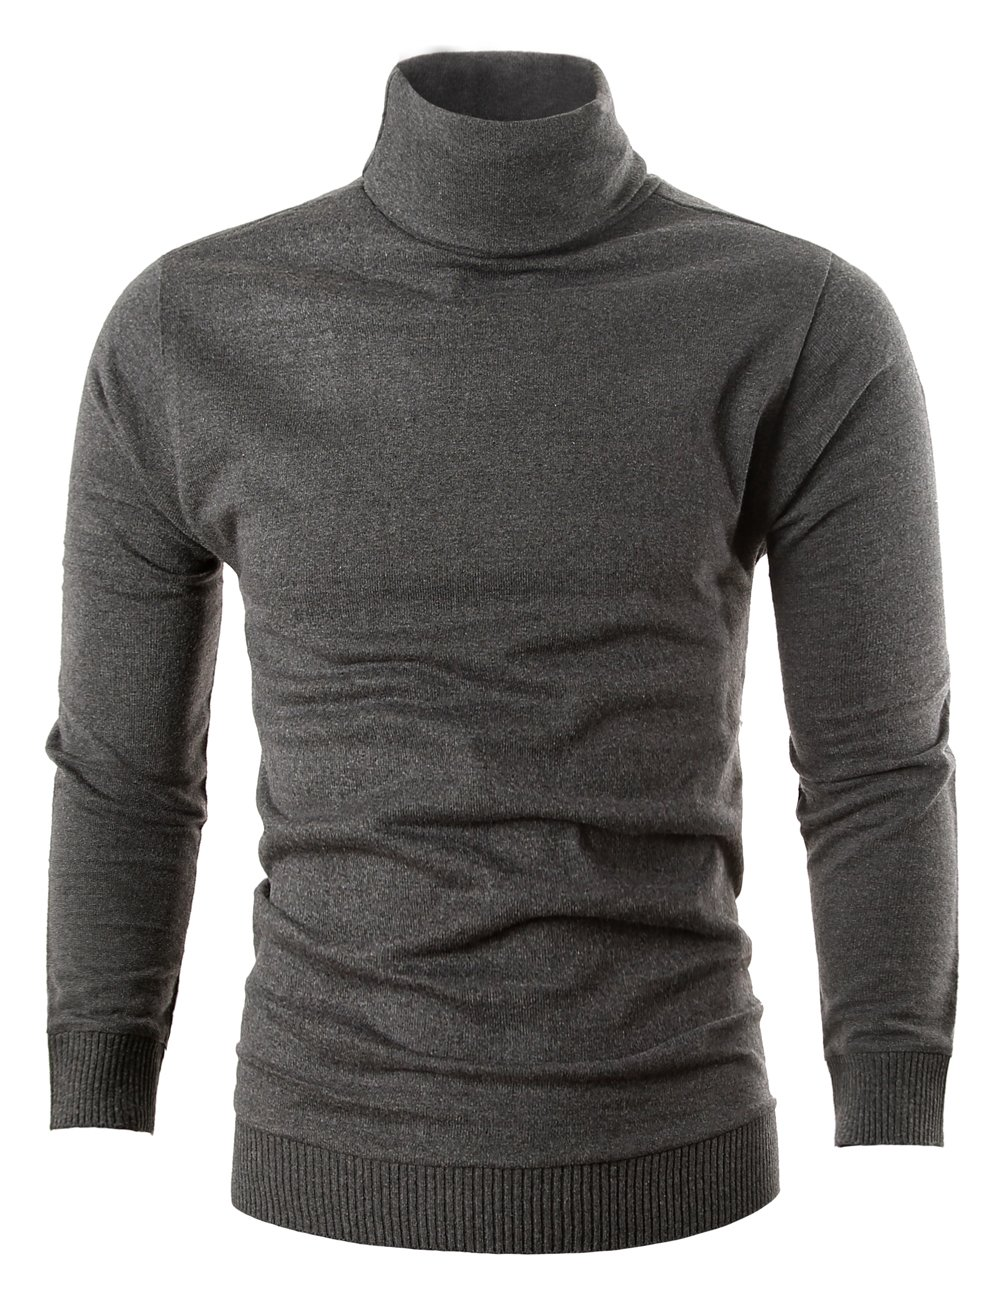 MIEDEON Mens Casual Basic Knitted Turtleneck Slim Fit Pullover Thermal Sweaters (Dark Grey, S)